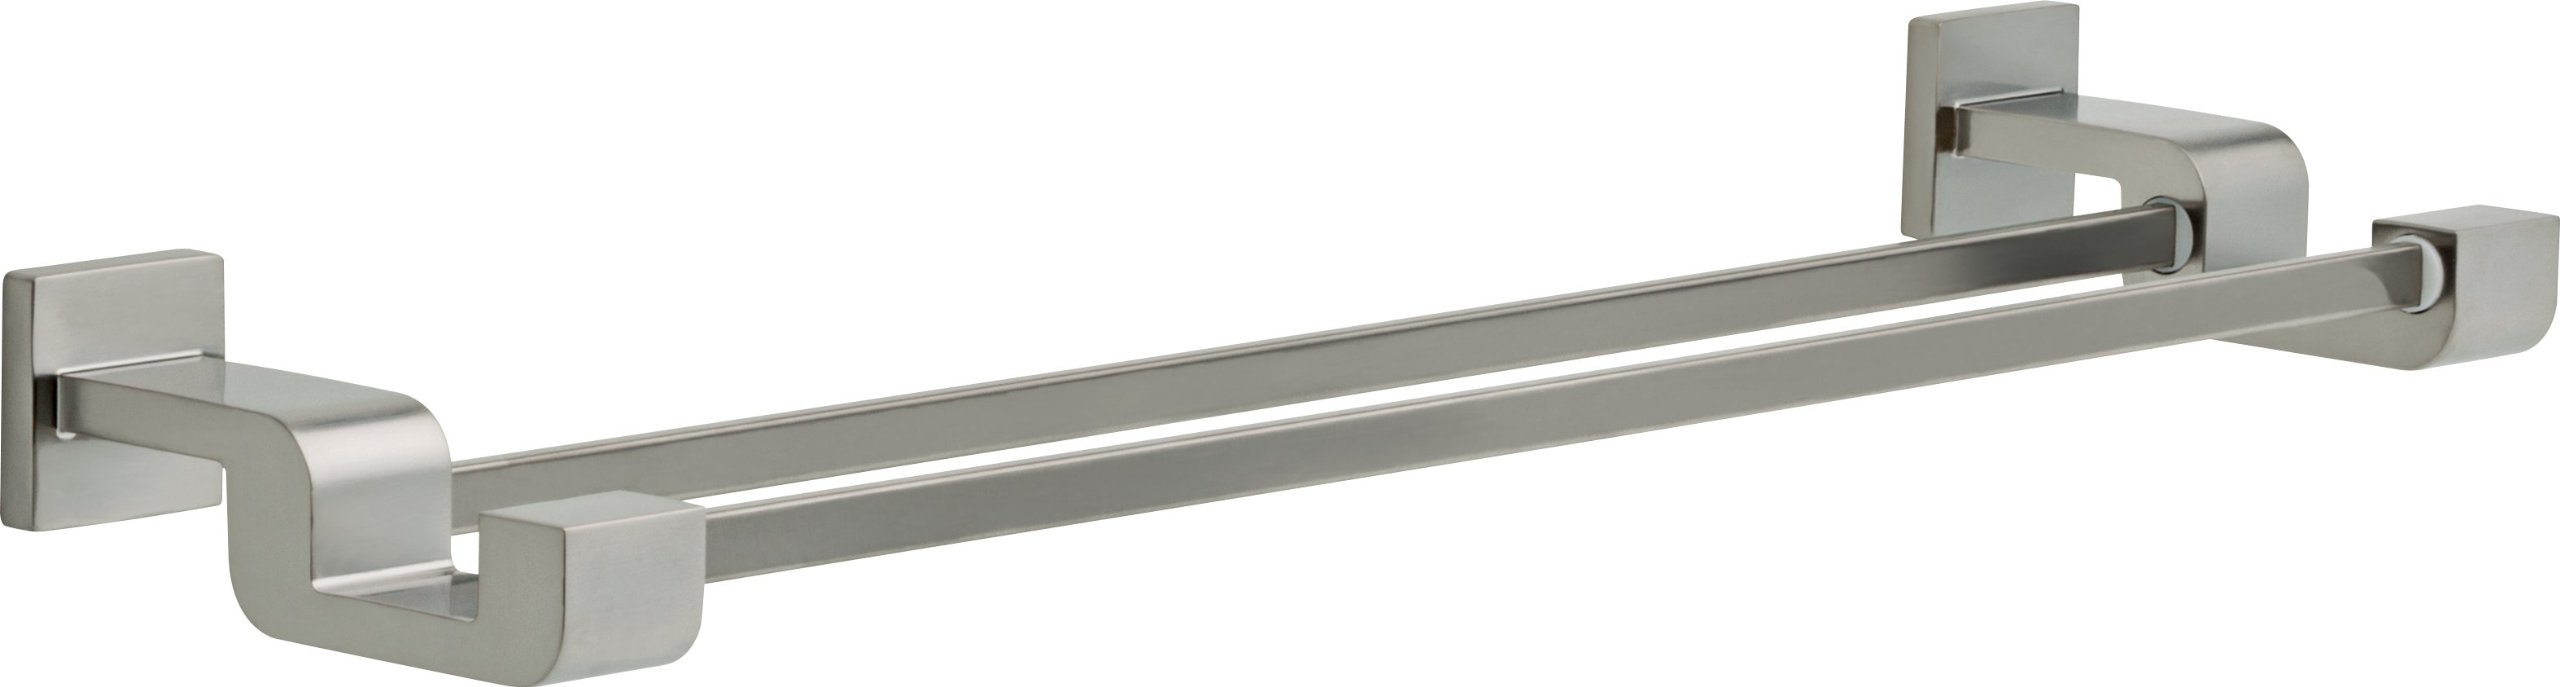 Delta Faucet 77525-SS Ara 24inch Double Towel Bar Rack, Brilliance Stainless Steel